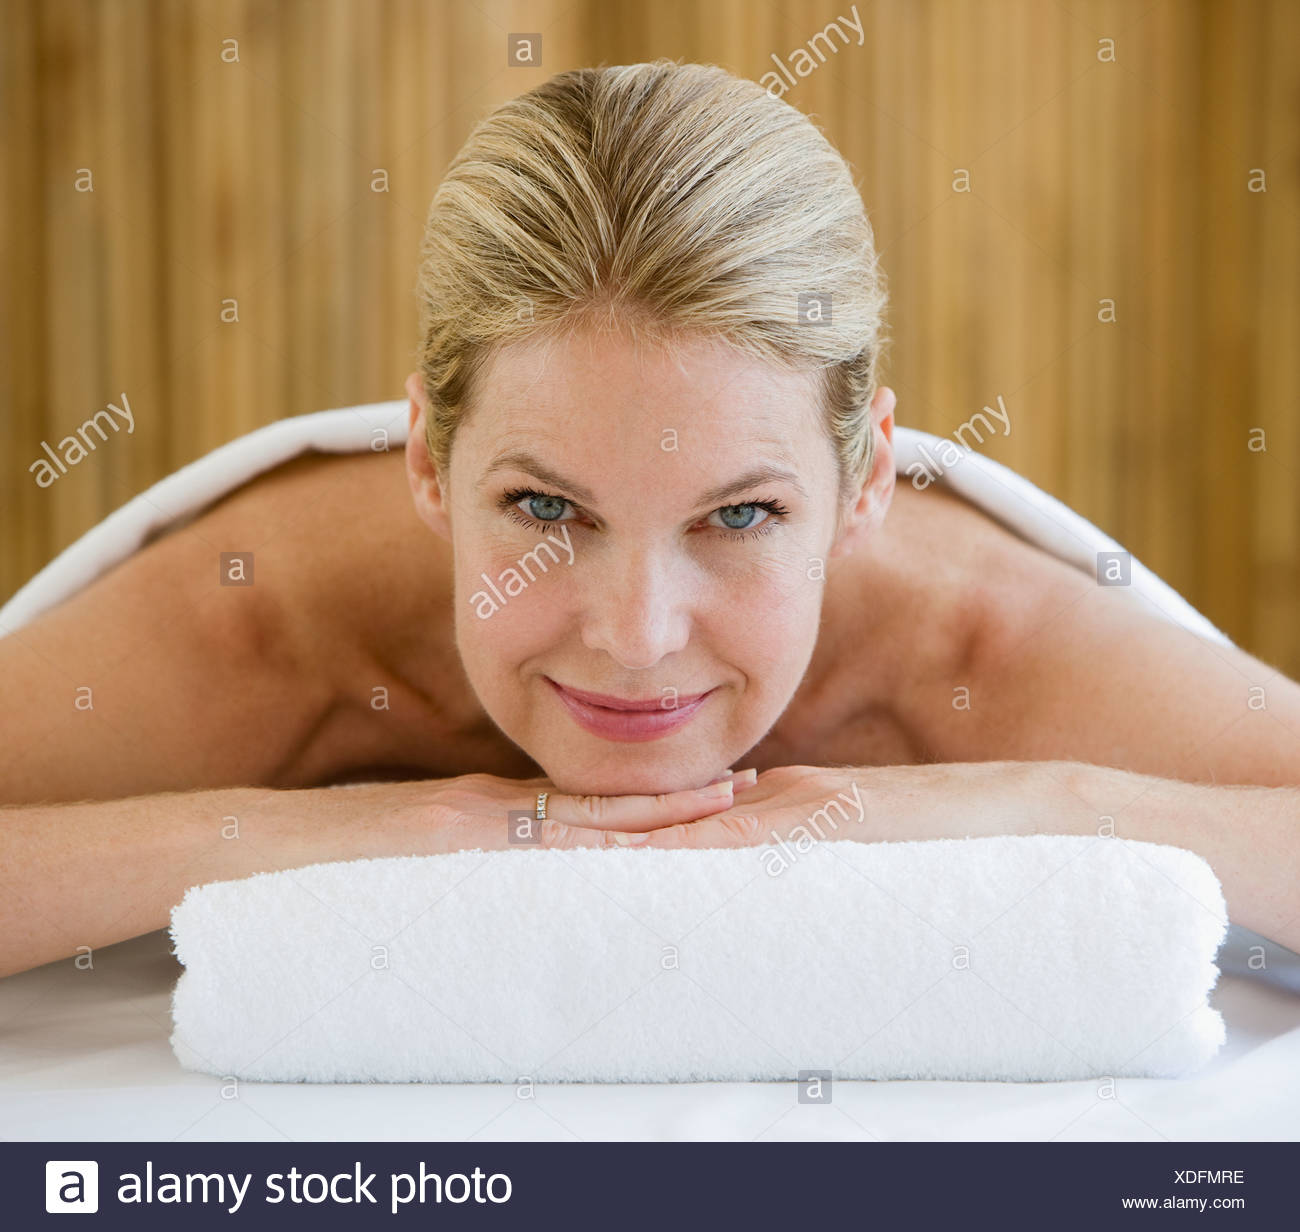 Woman on spa treatment table - Stock Image